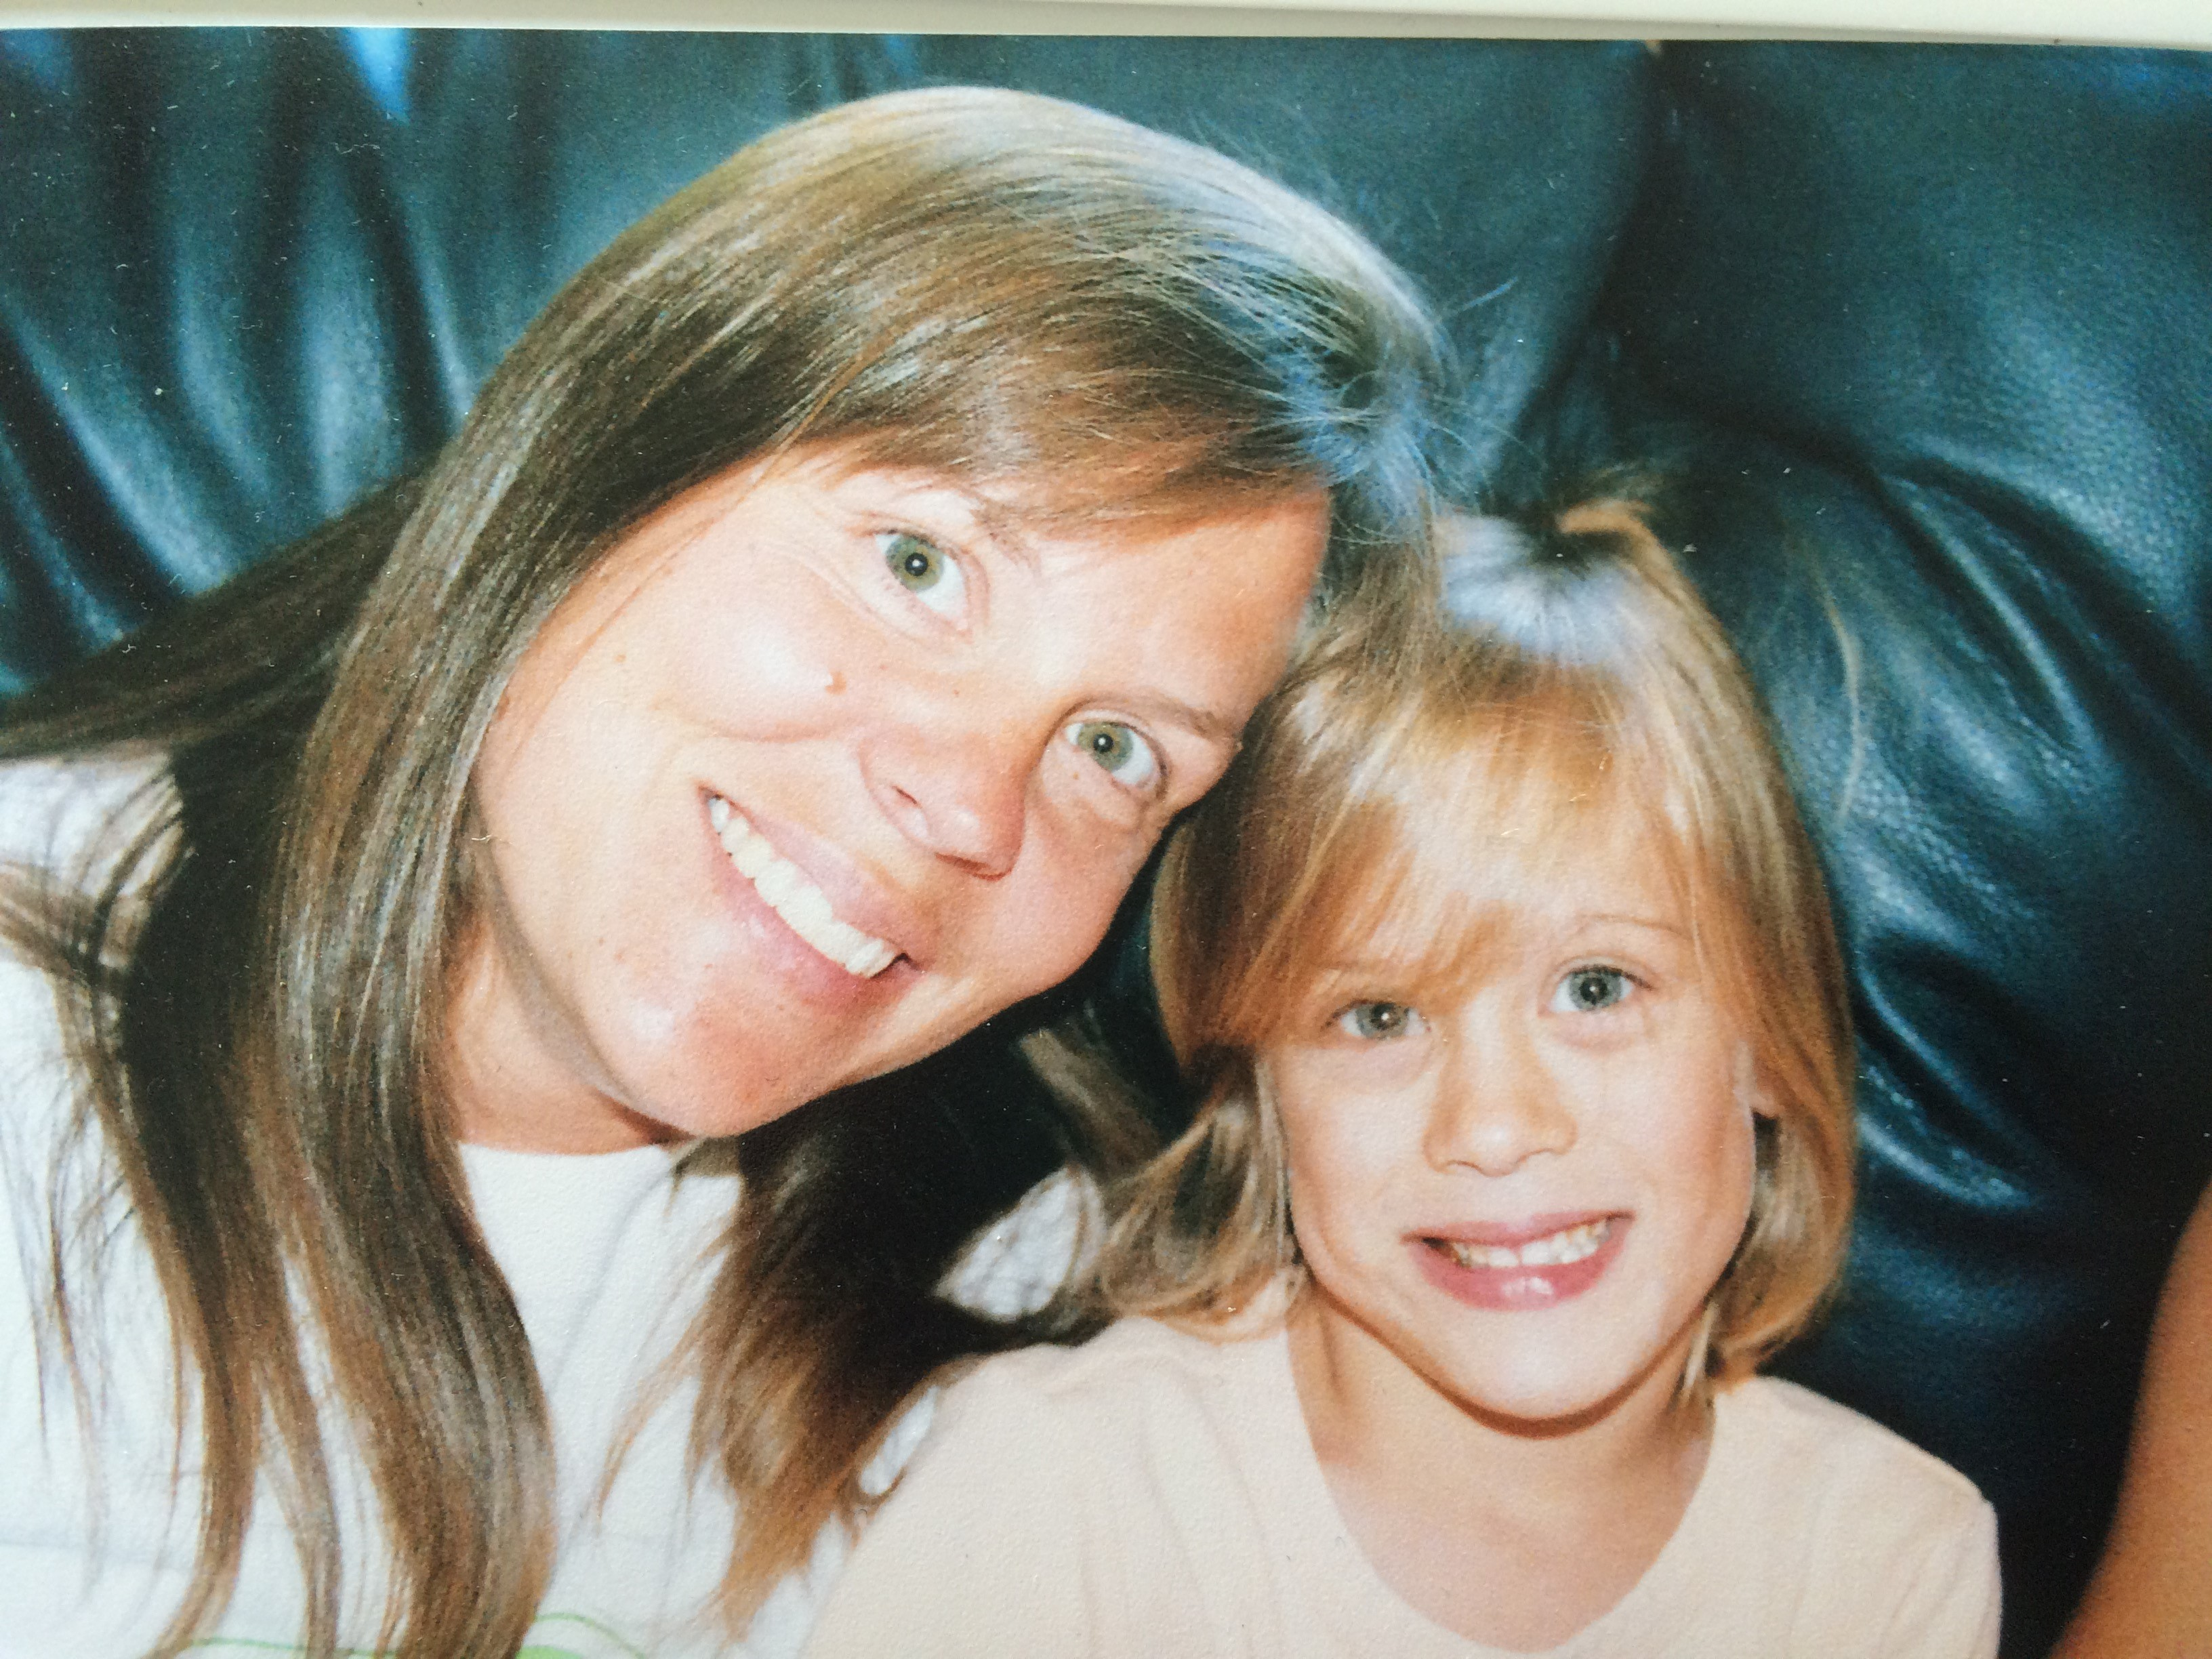 mom and daughter smiling